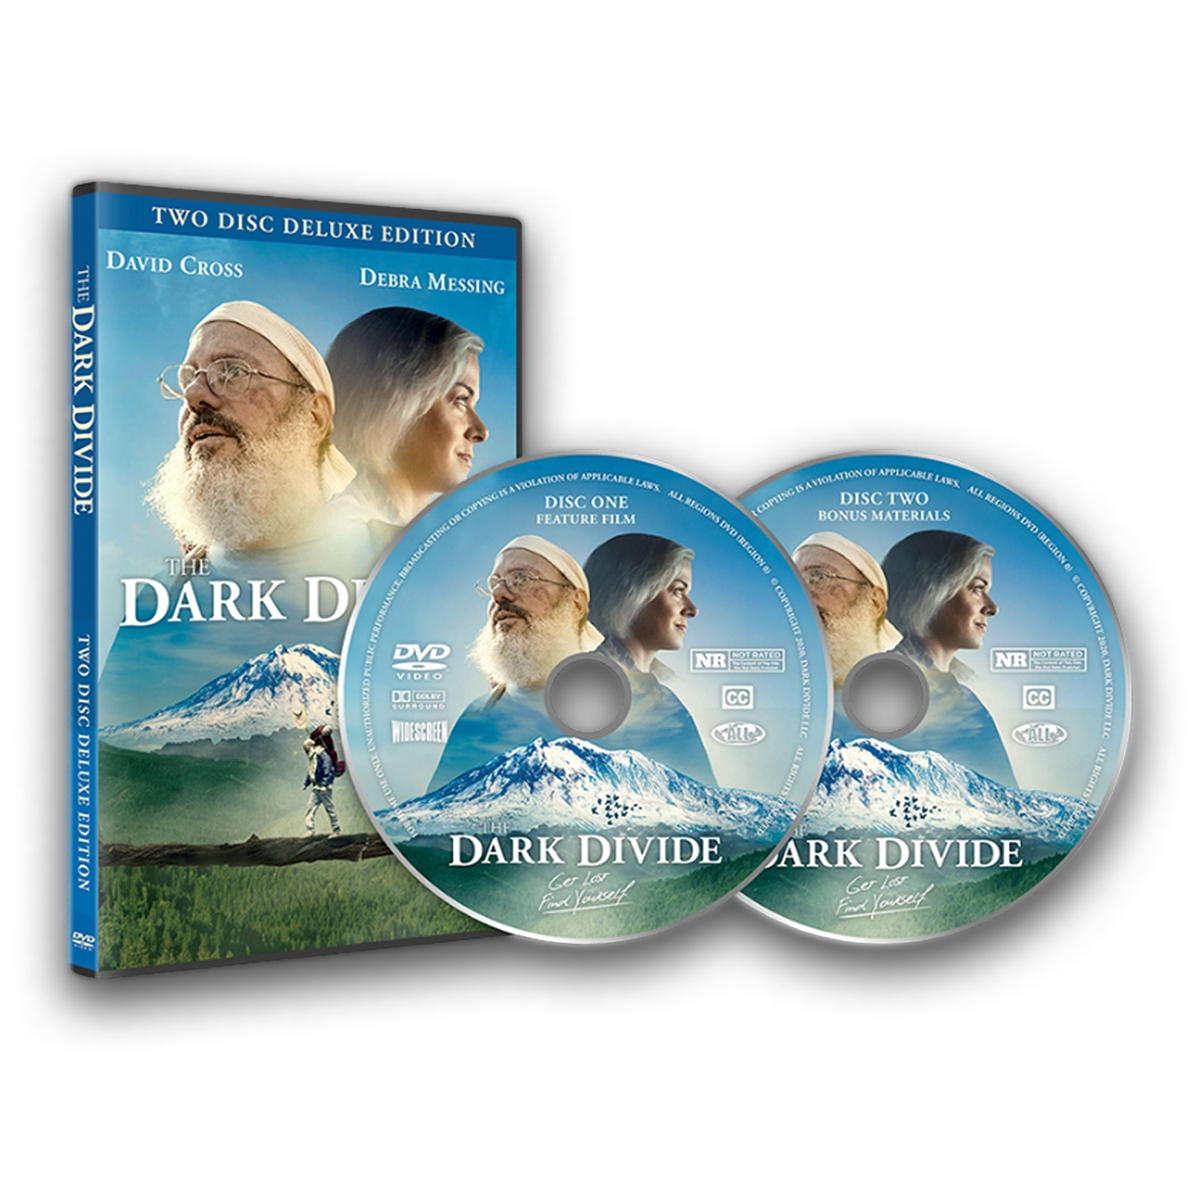 Dark Divide two-disc deluxe edition DVD